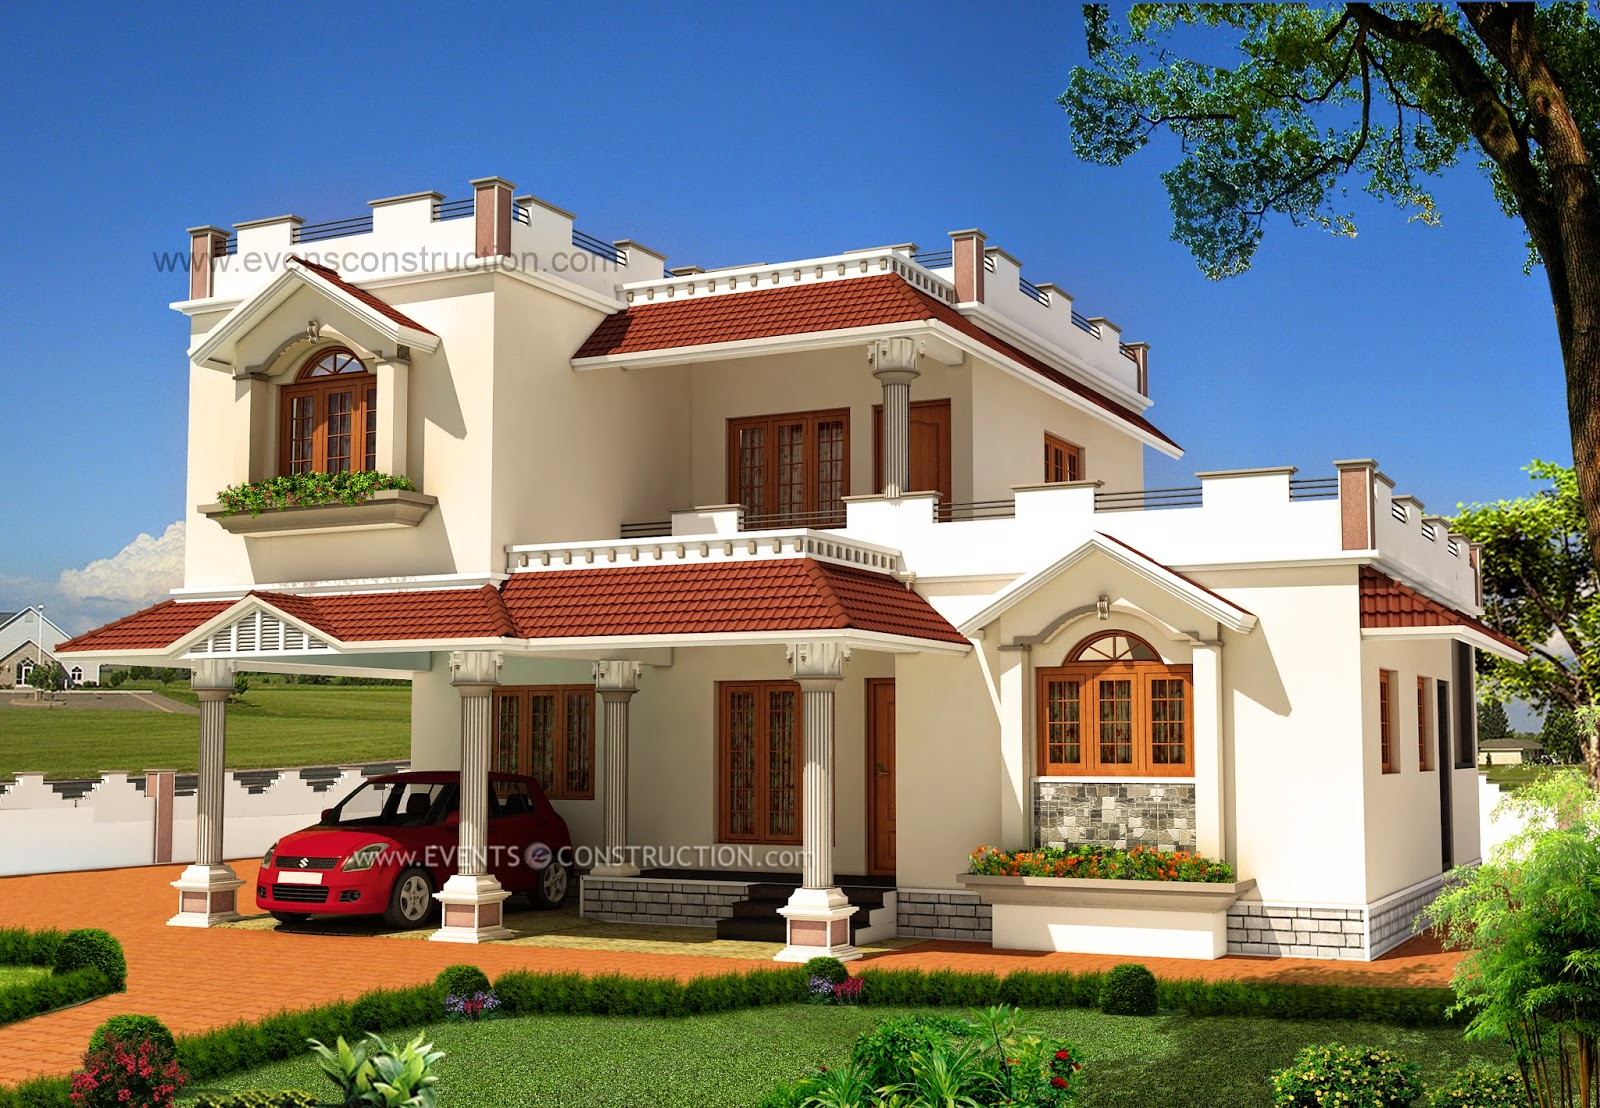 Evens construction pvt ltd september 2014 for House garden design india